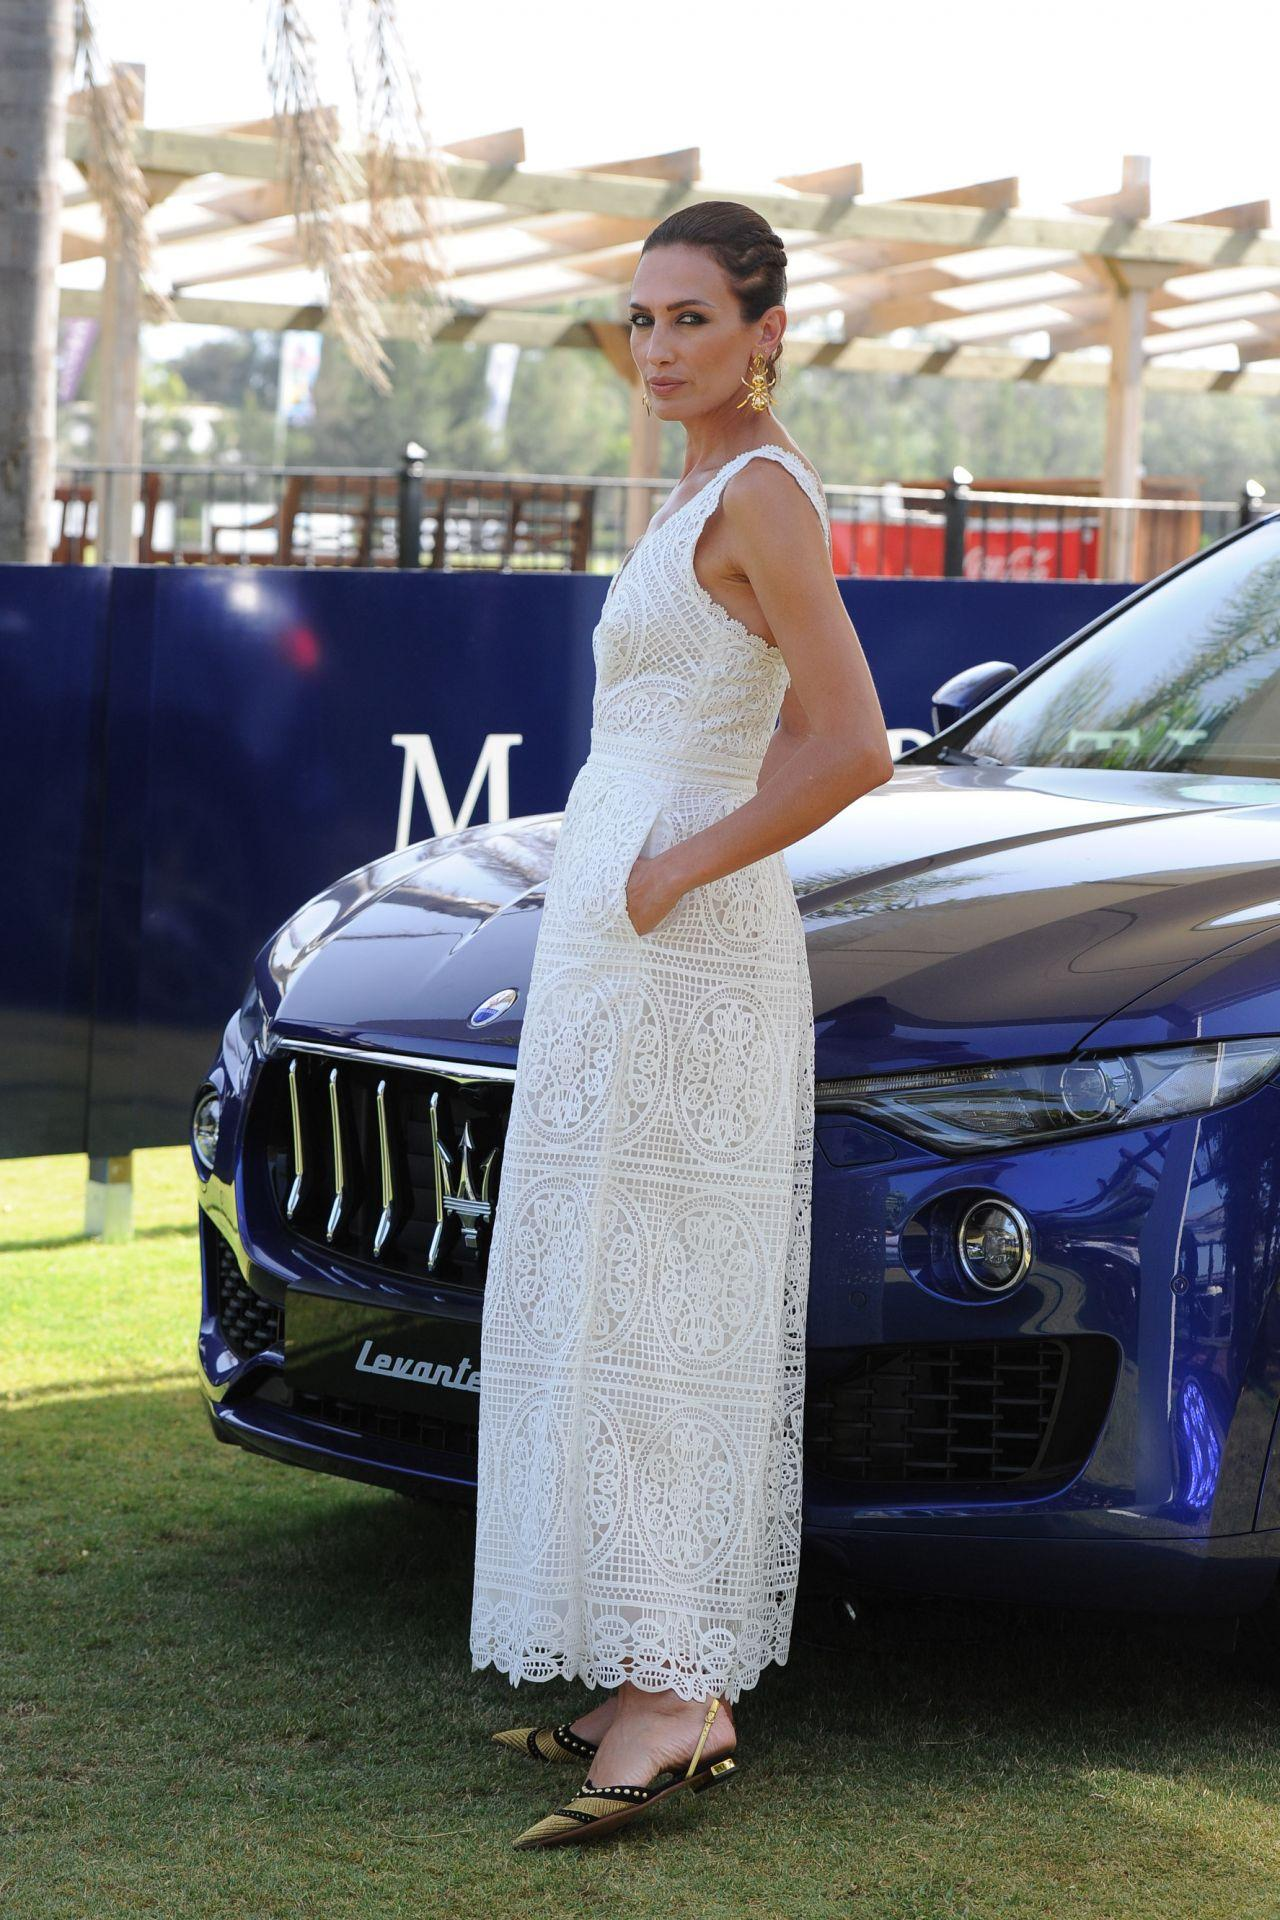 Maserati_Polo_Tour-_Copa_de_Plata_Maserati_in_Sotogrande-Nieves_Alvarez_with_Maserati_Levante_(3)